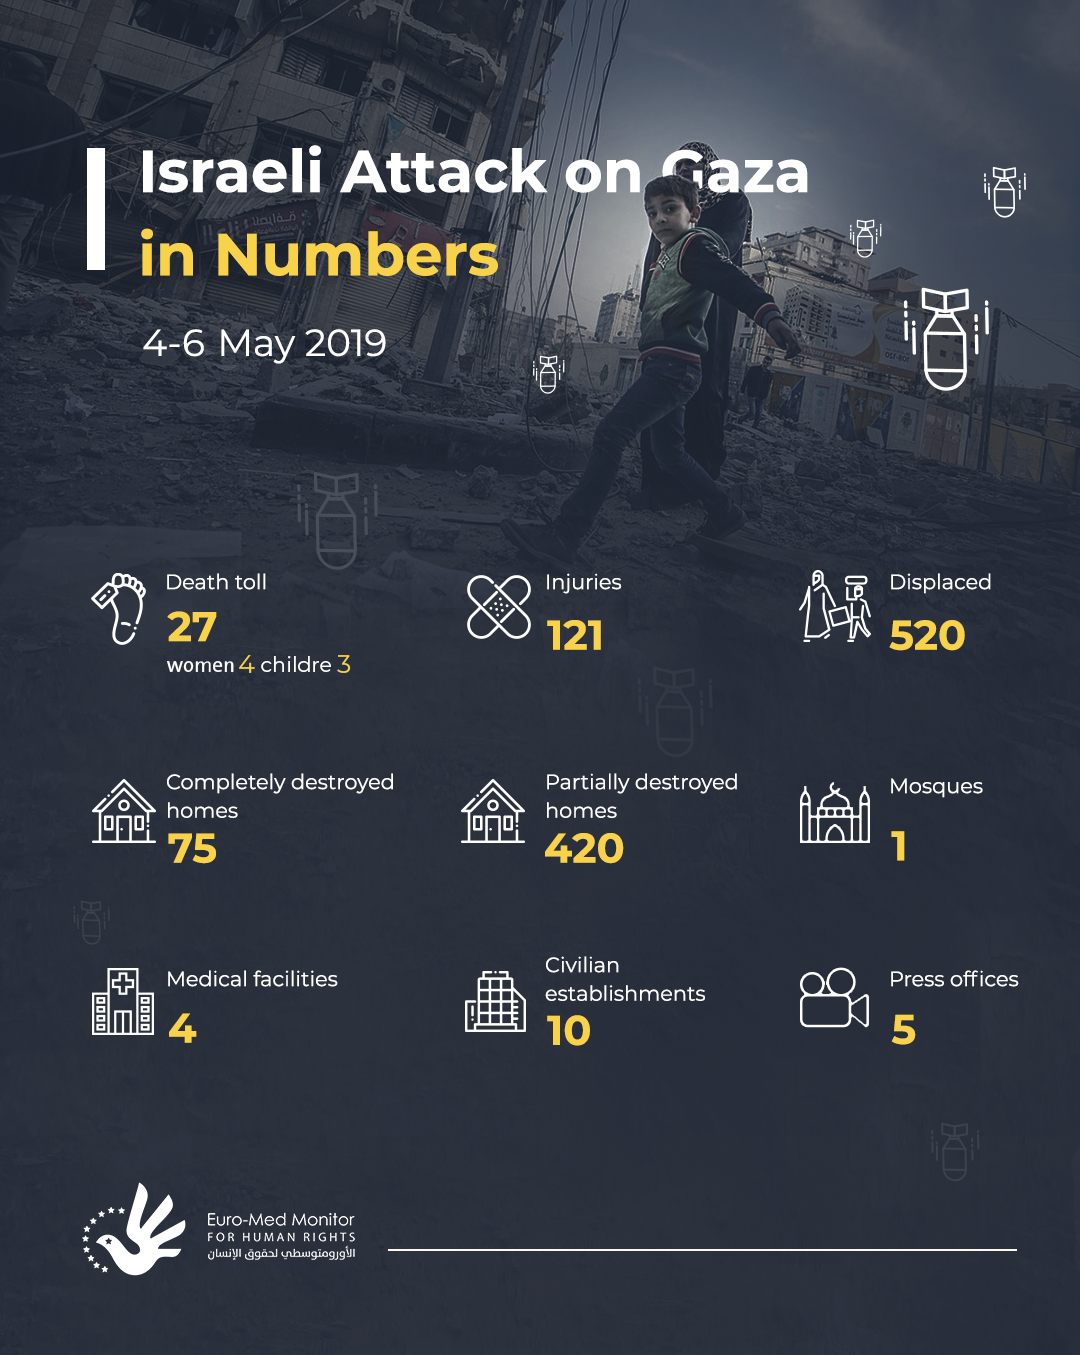 The toll of Israeli attack on the Gaza Strip starting from May 4-6 2019.